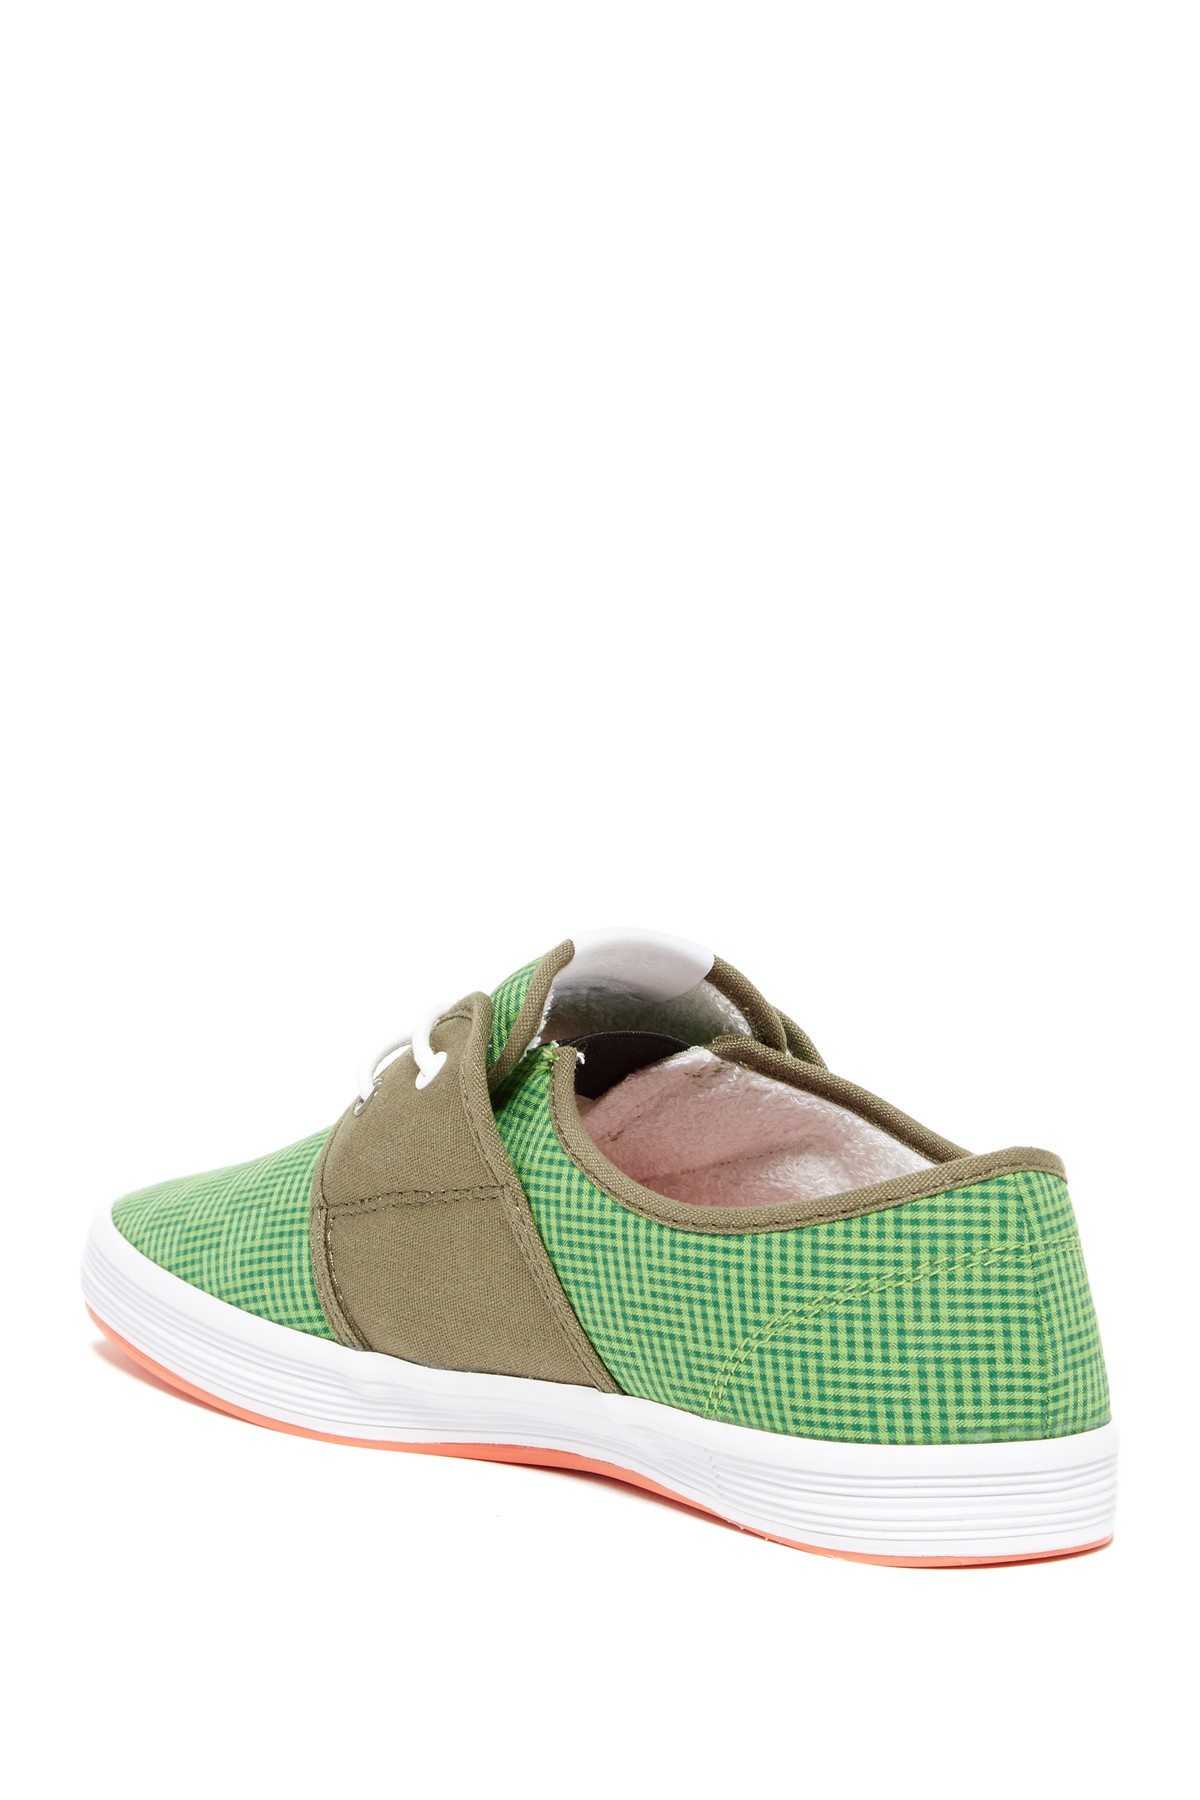 Lyst fish n chips spam 2 checkered sneaker in green for Fish and chips shoes